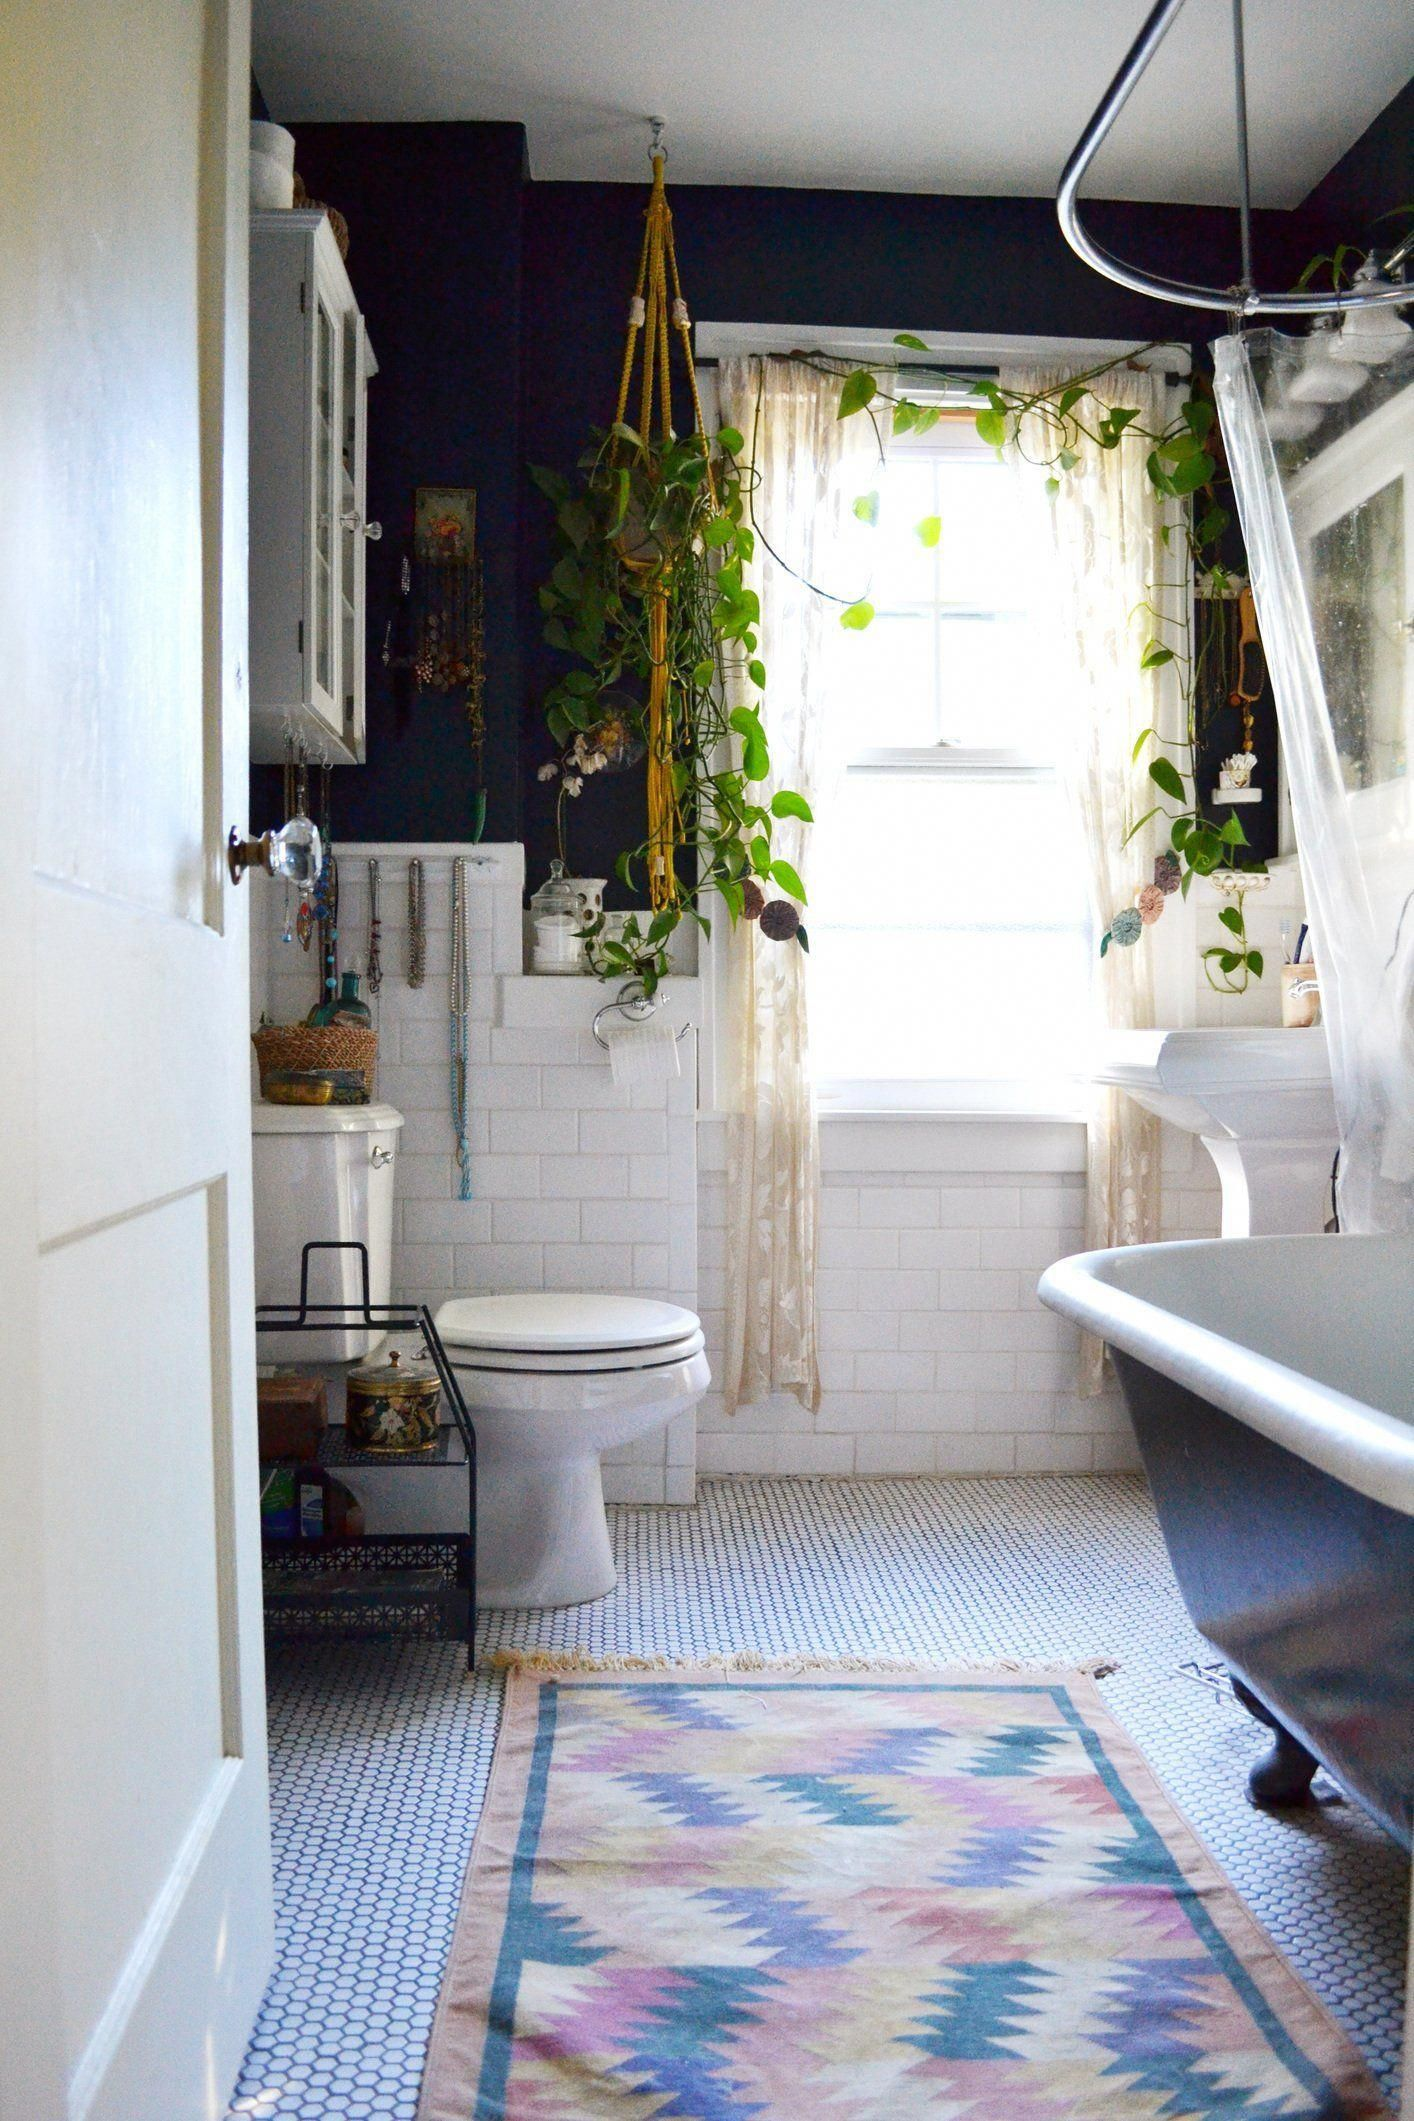 Find Out Now, What Should You Do For Your Bathroom Decor 3 bathroom decor Find Out Now, What Should You Do For Your Bathroom Decor Find Out Now What Should You Do For Your Bathroom Decor 3